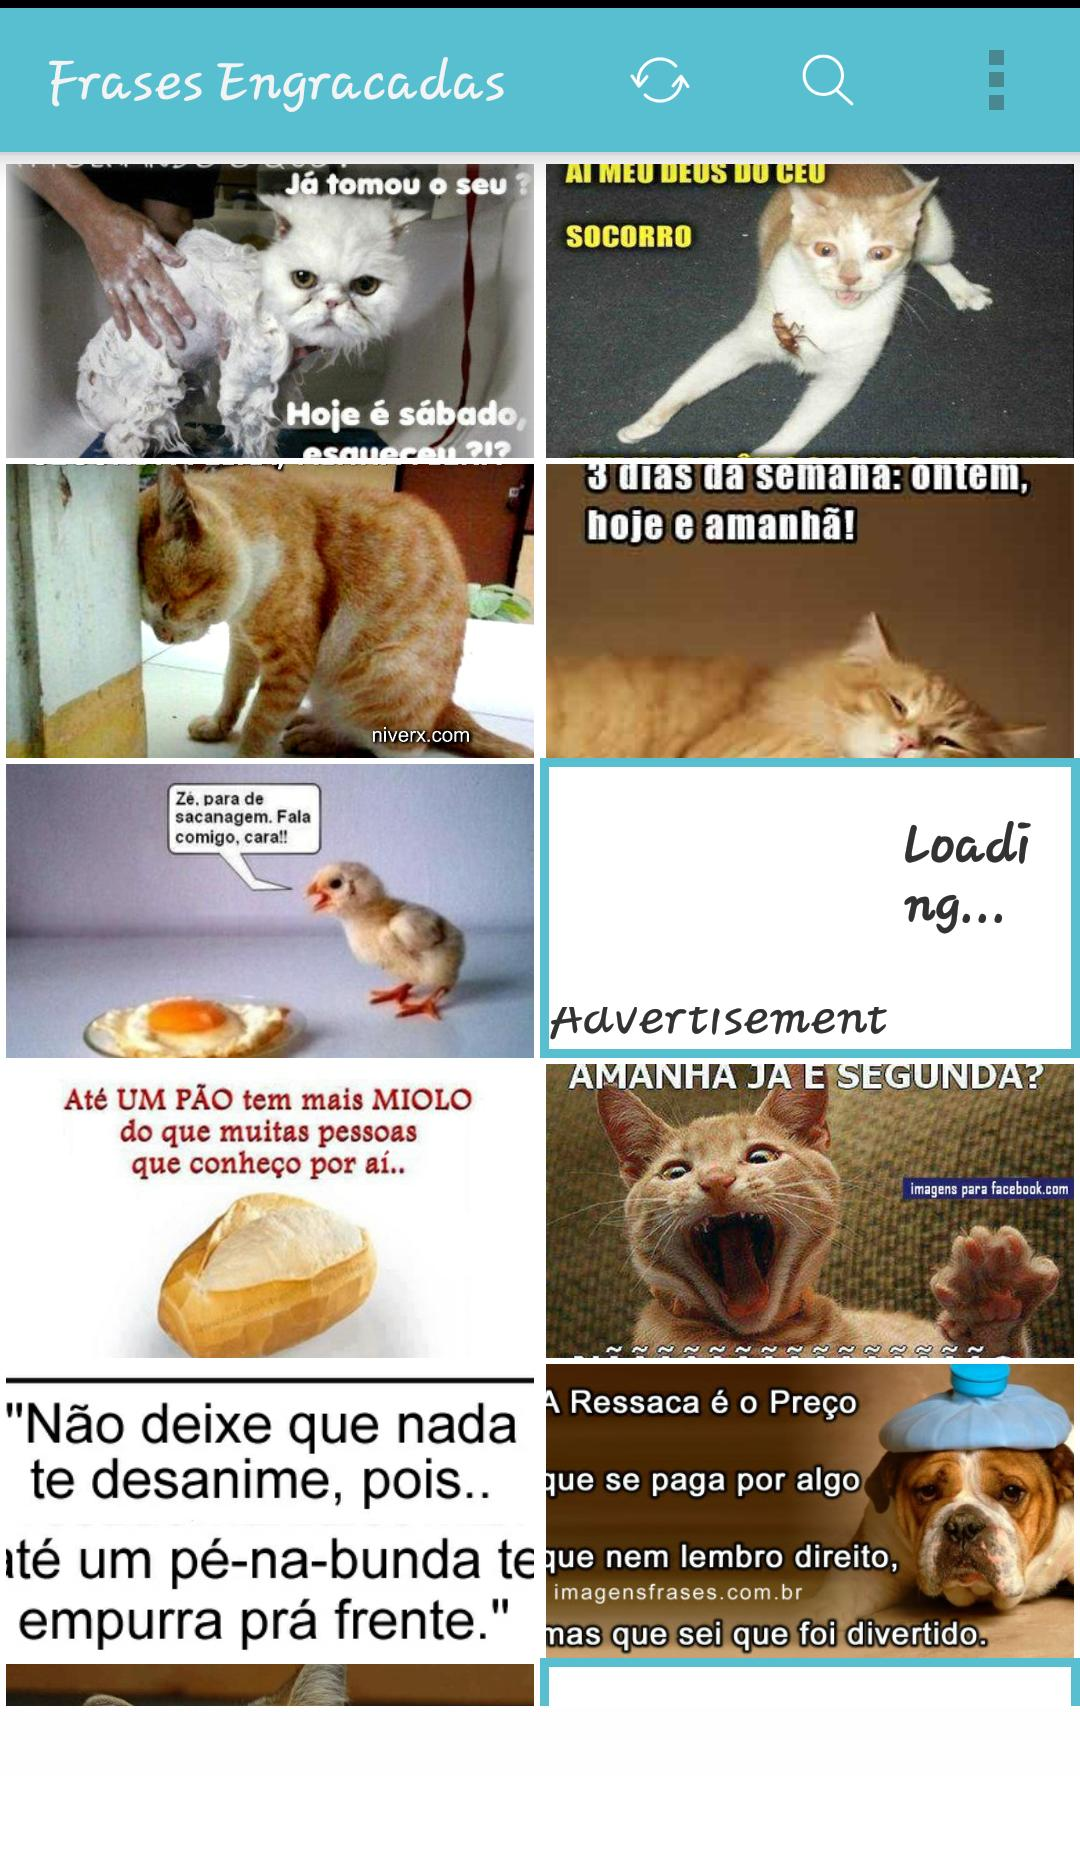 Frases Engraçadas For Android Apk Download